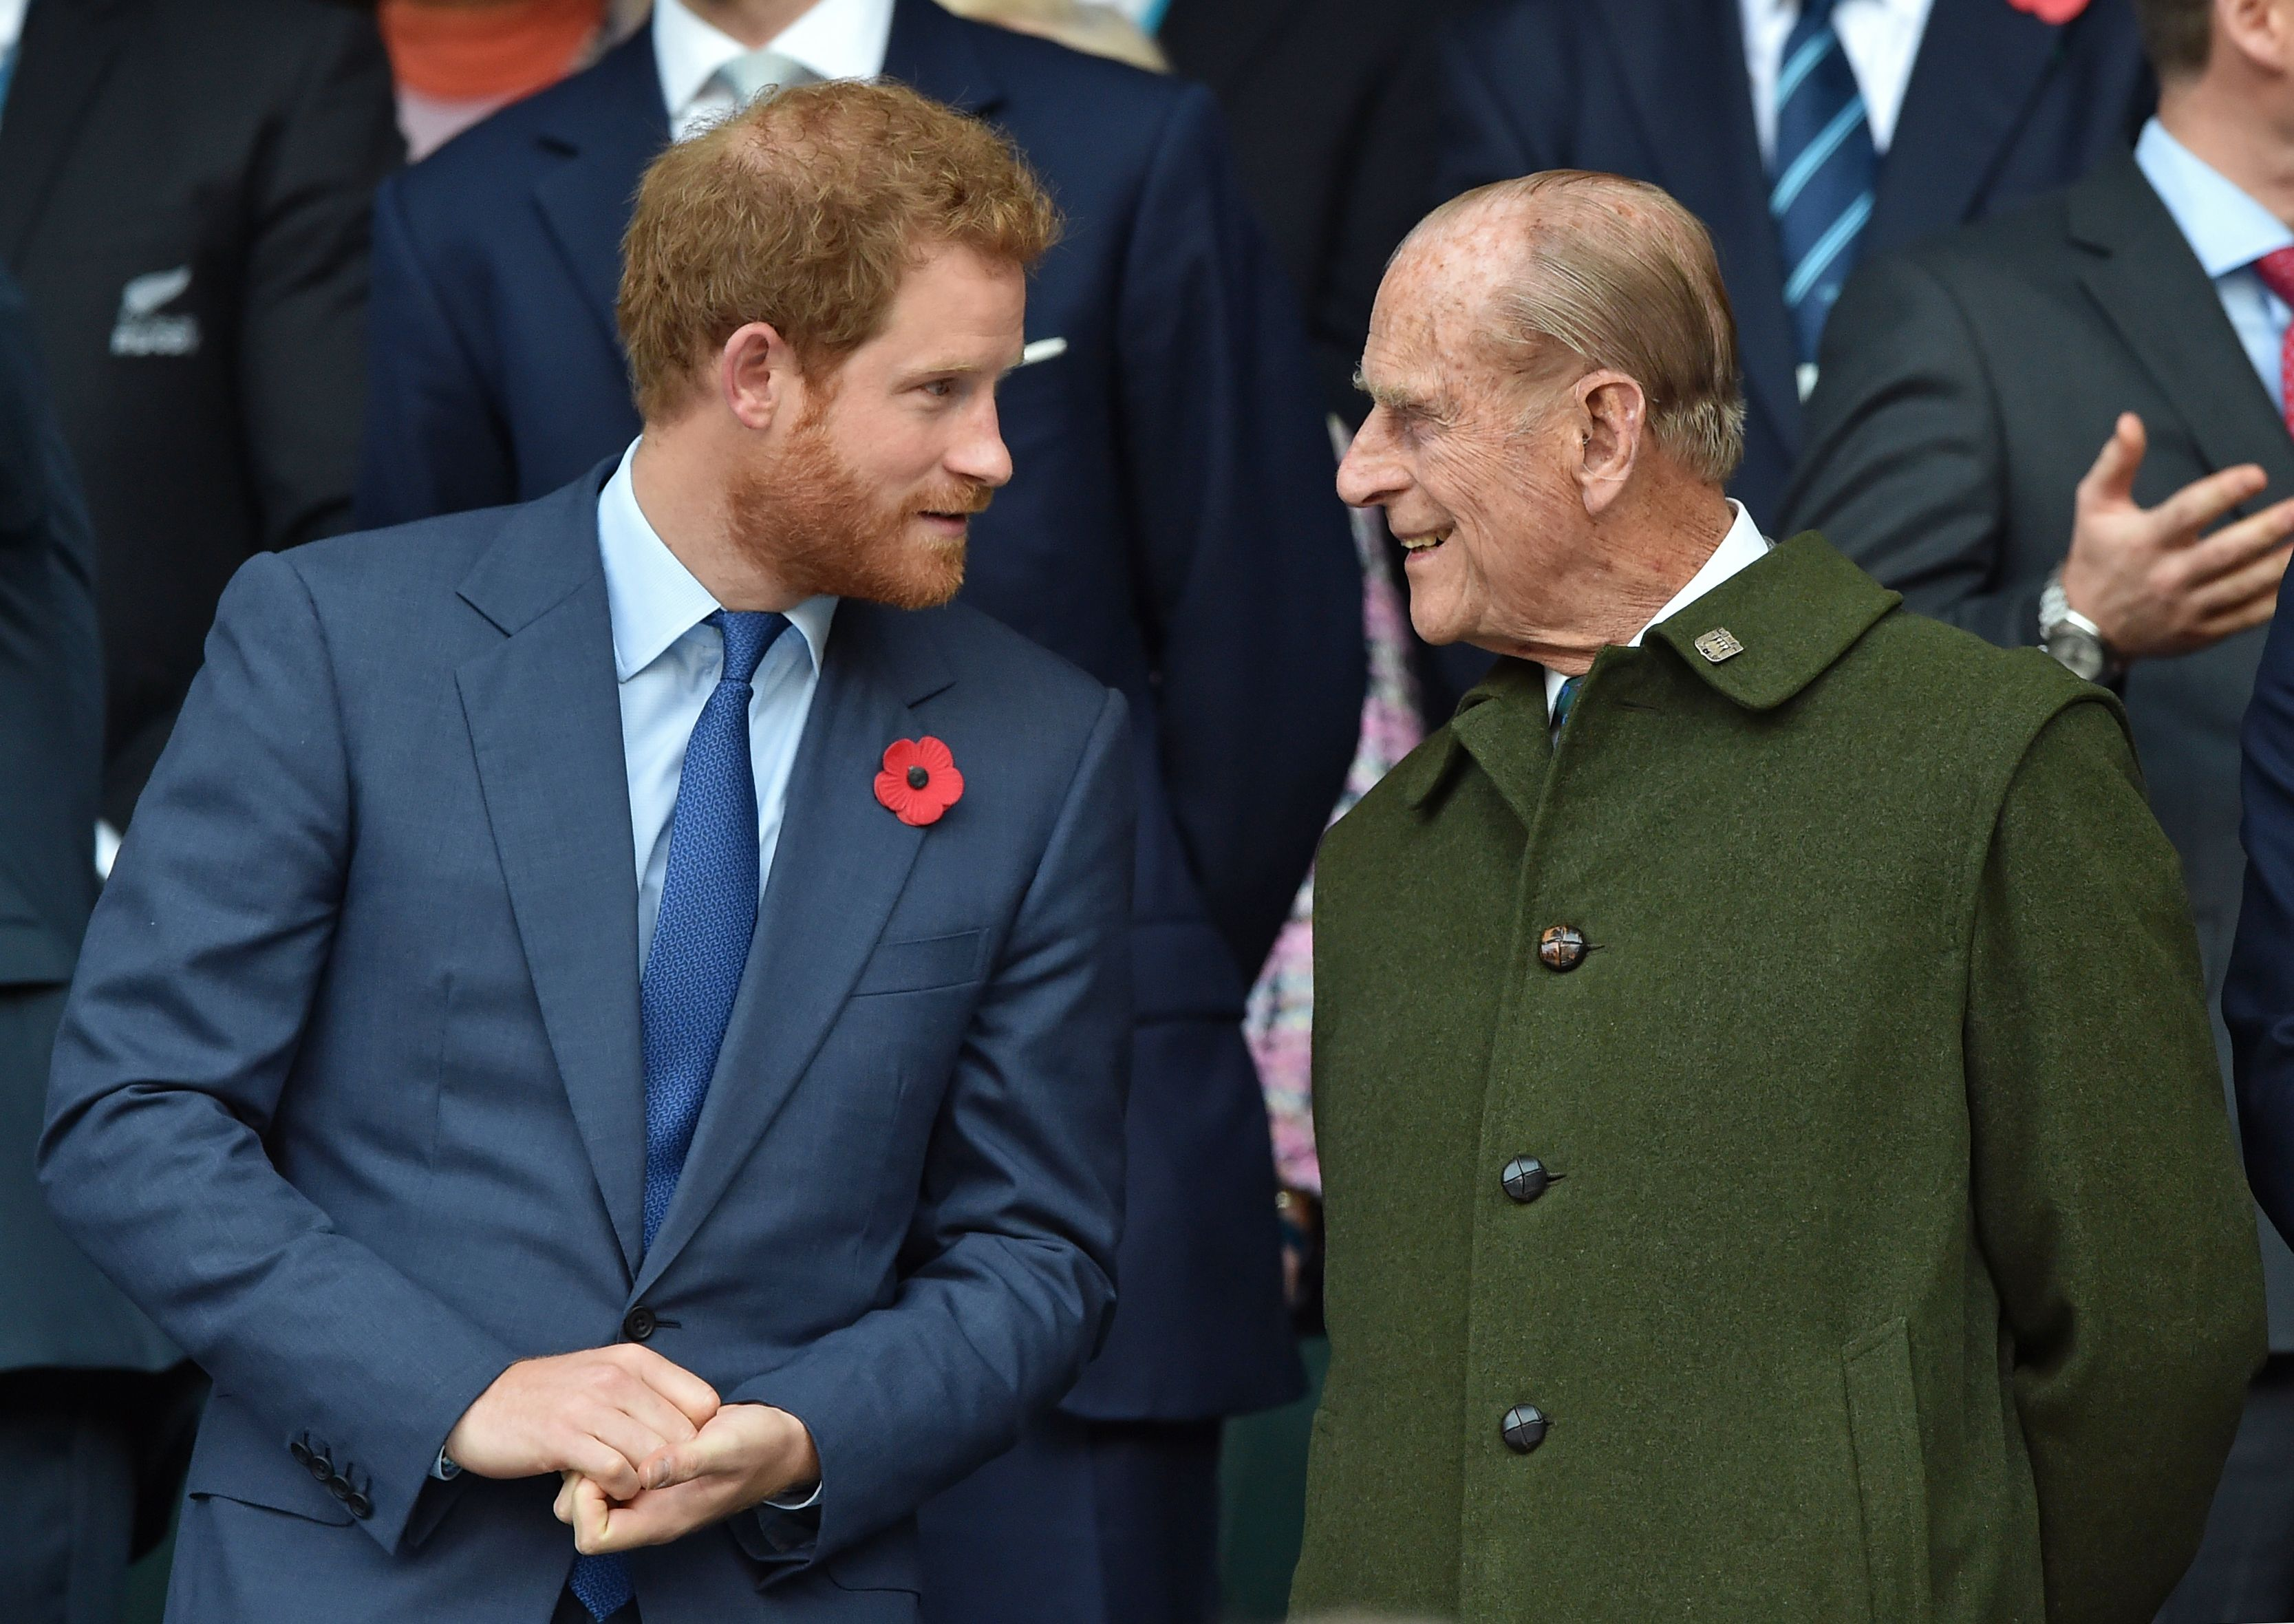 Prince Harry Is in Quarantine at Frogmore Cottage Ahead of Prince Philip's Funeral